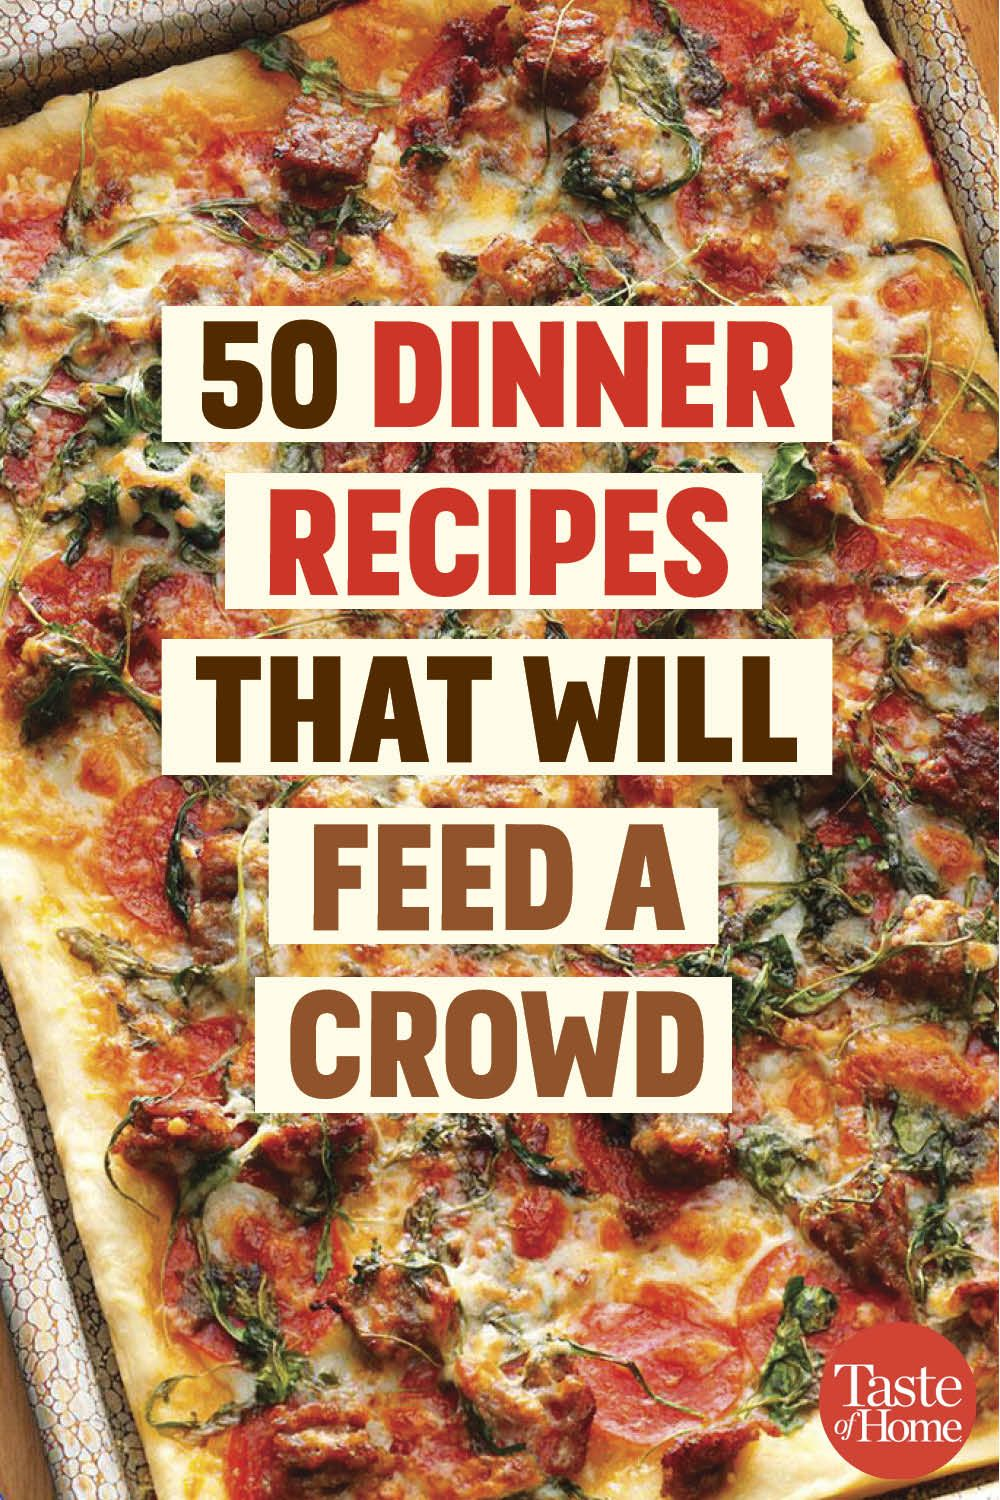 50 Dinner Recipes That Will Feed a Crowd